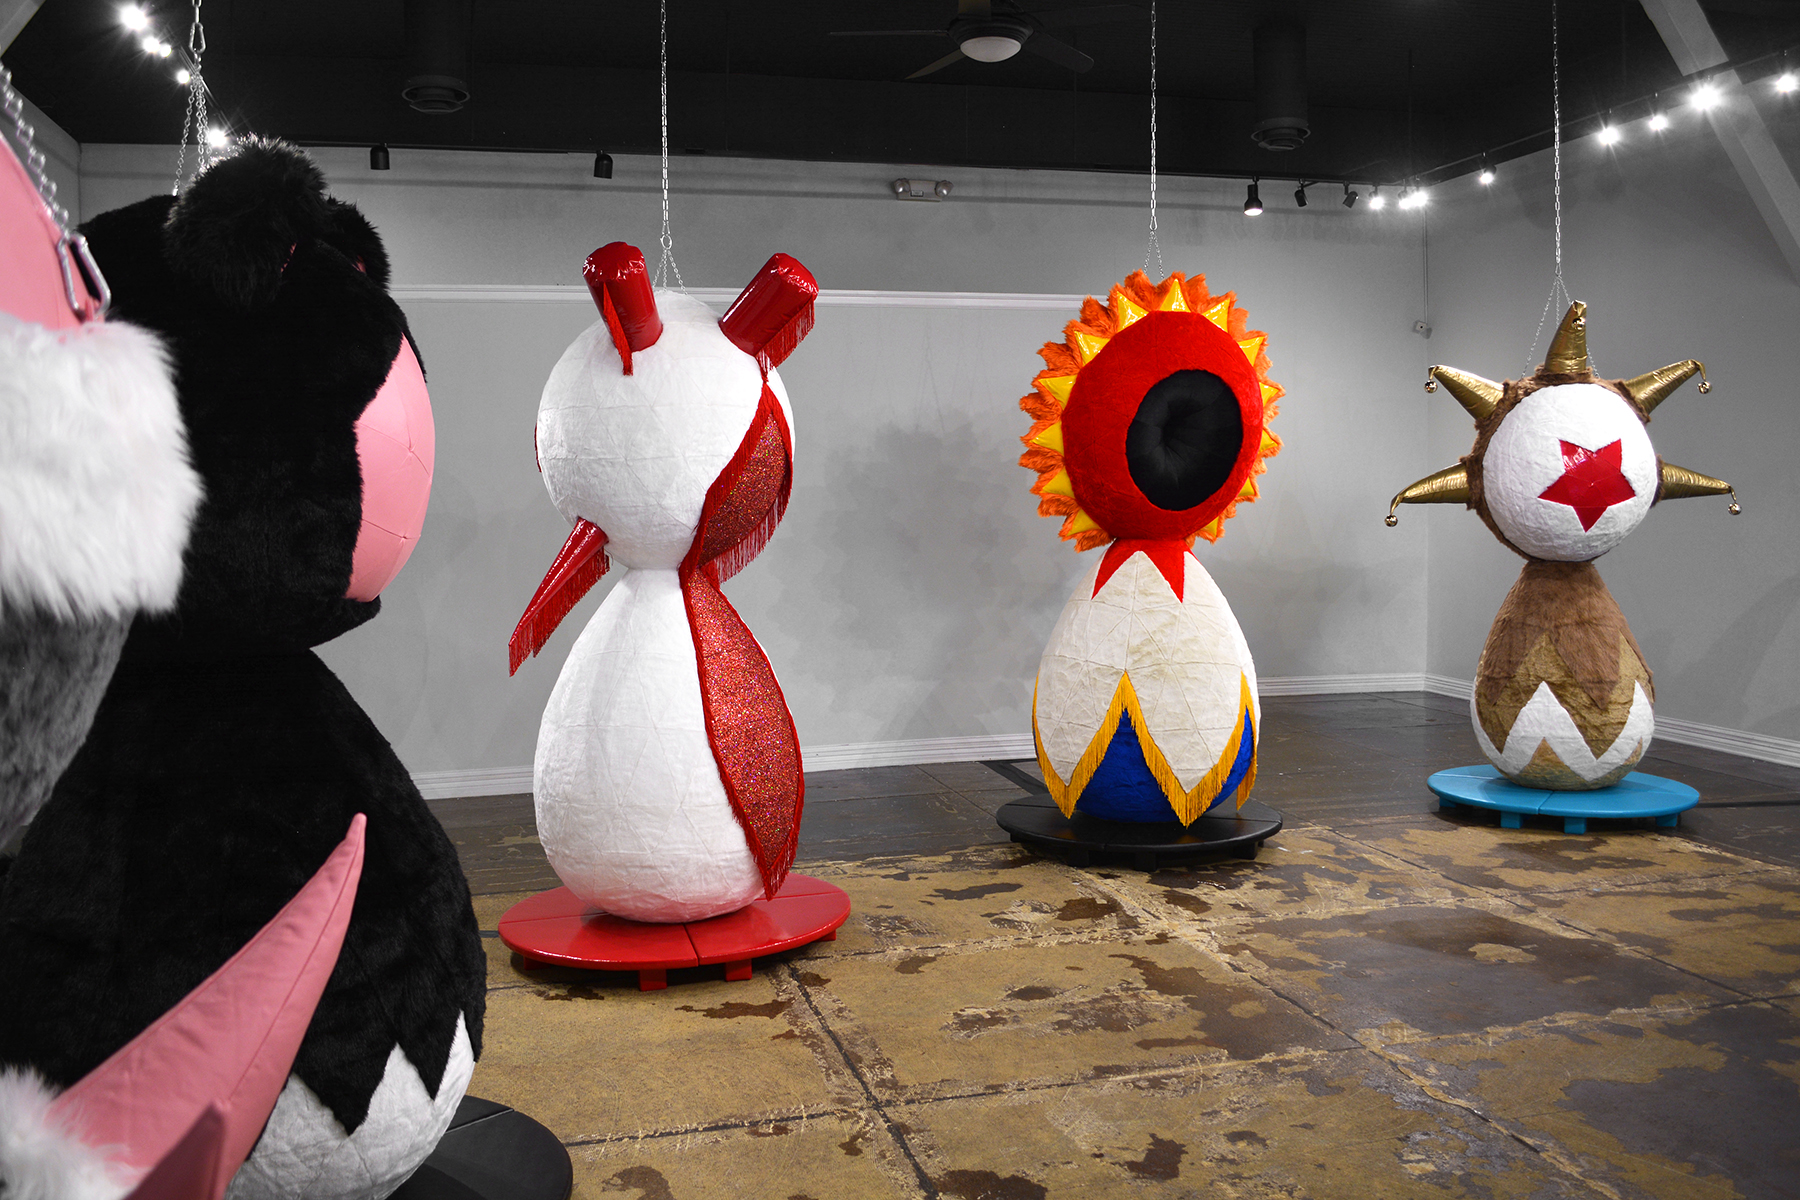 The Sensational Inflatable Furry Divines , Yeiser Art Center, Paducah, Ky. 2019